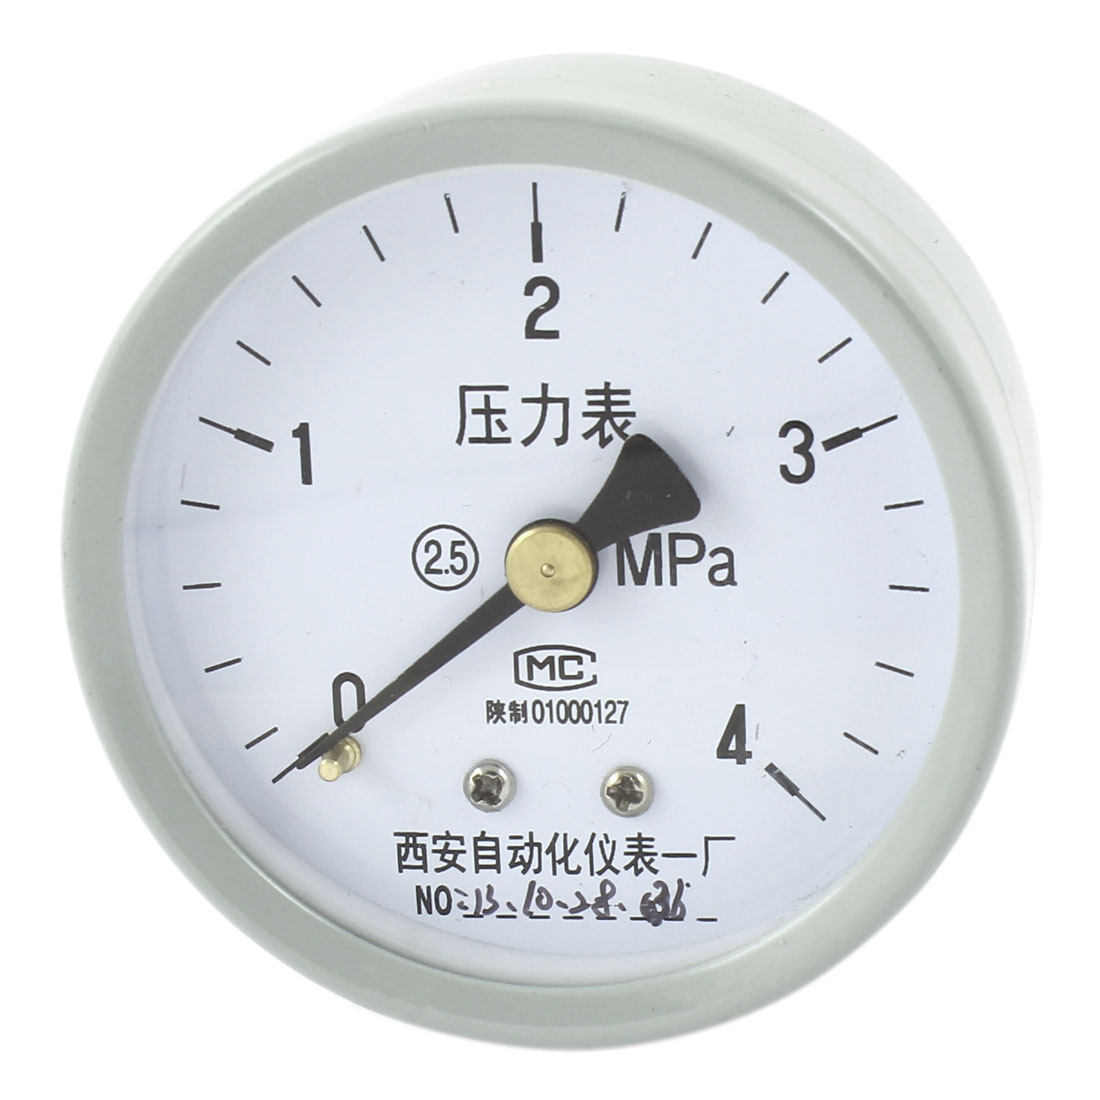 Light Gray 53mm Dial 1/4PT Threaded 0-4Mpa Air Compressor Pressure Gauge